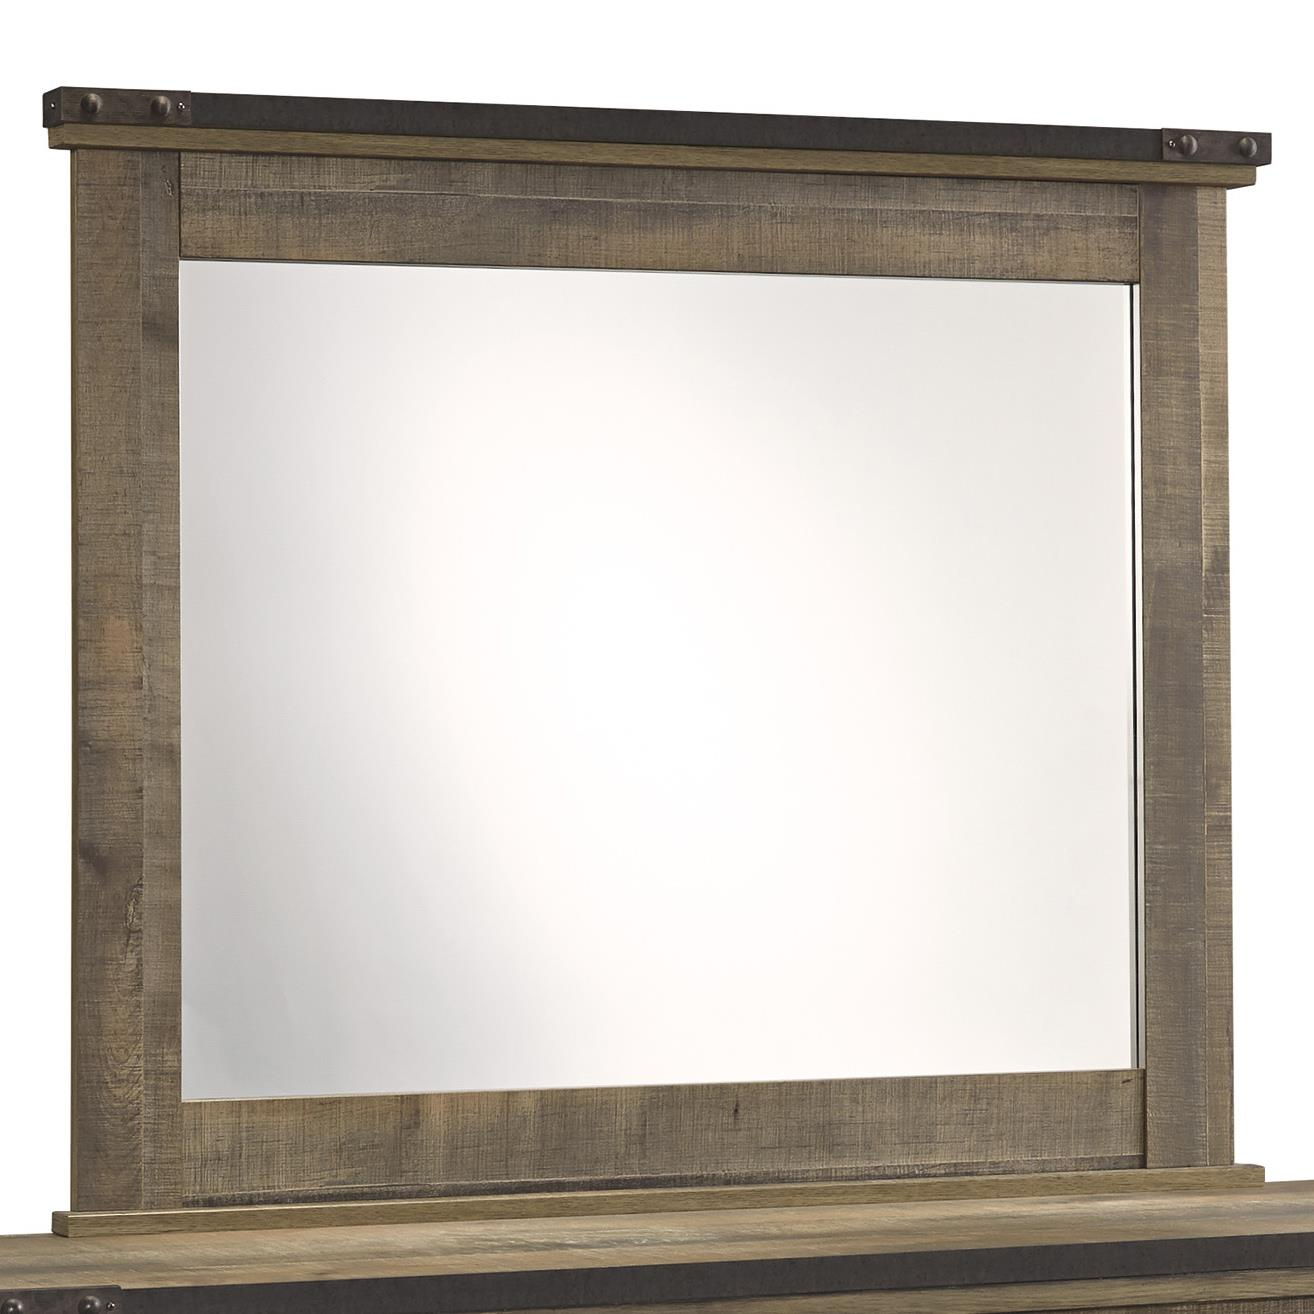 Signature Design by Ashley Trinell Bedroom Mirror - Item Number: B446-26